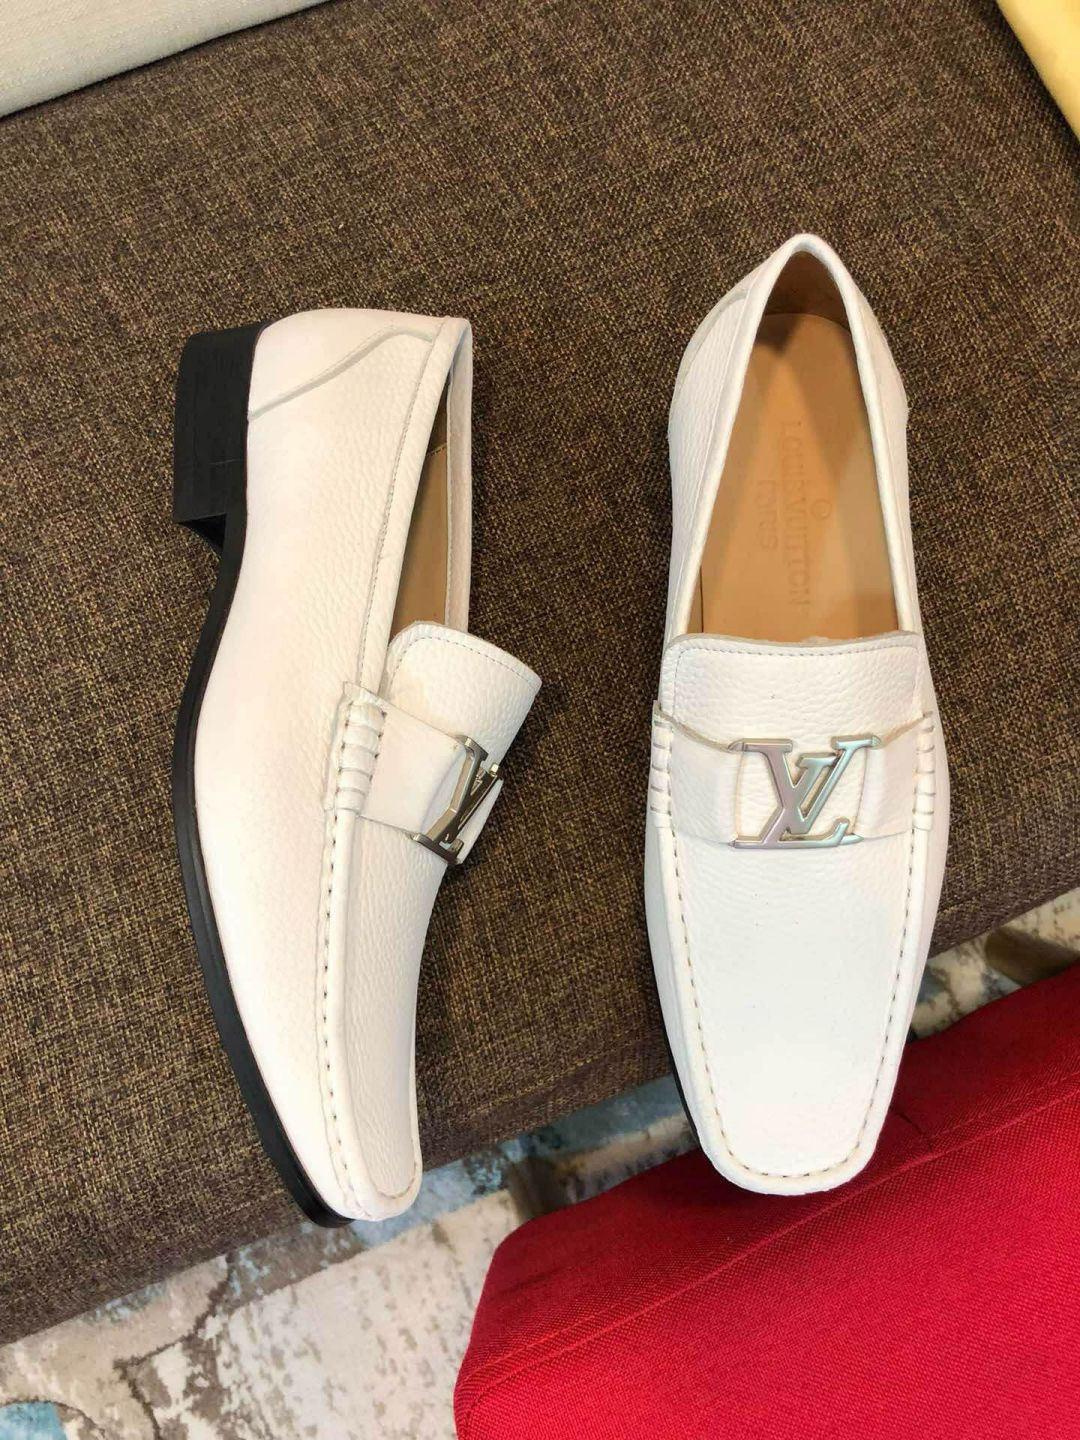 LV Loafers Men Driver Shoes